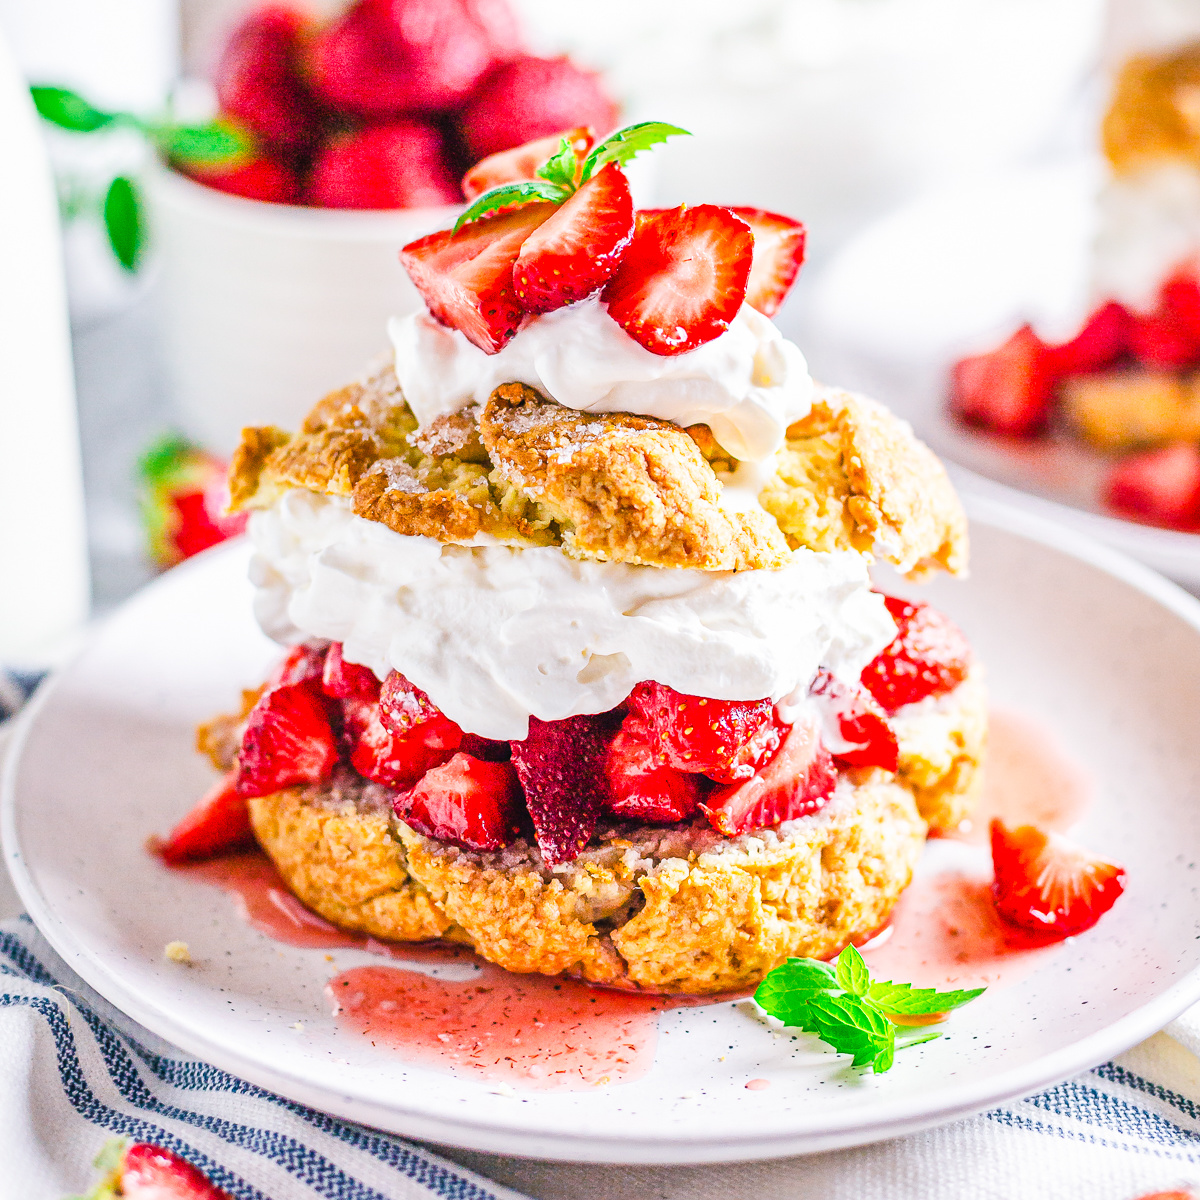 Square image of one finished shortcake on white plate with garnishes